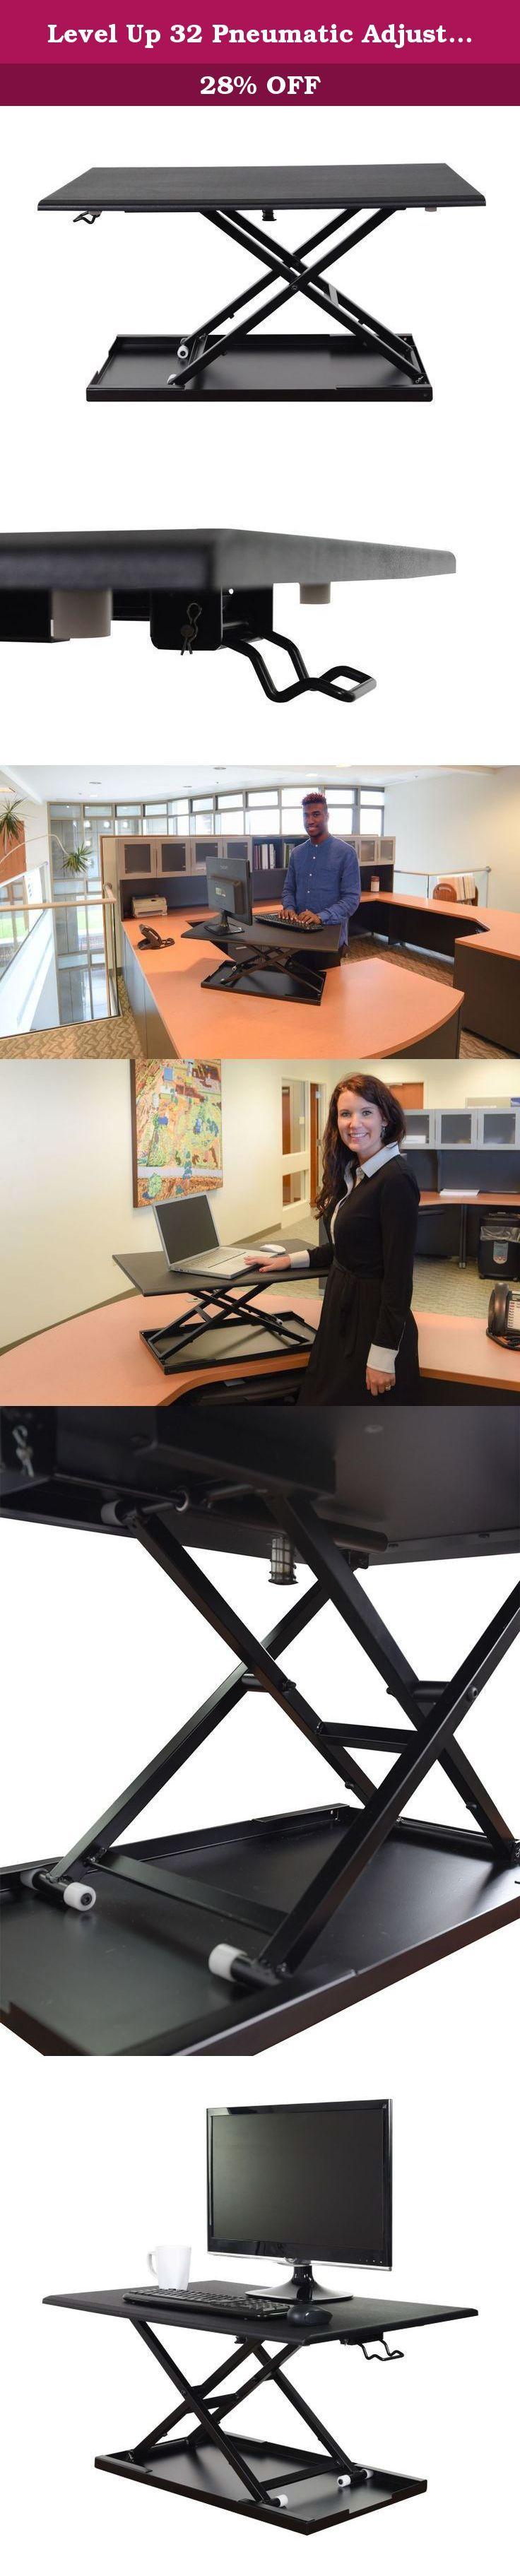 Level Up 32 Pneumatic Adjustable Desktop Desk. Level Up 32 Pneumatic Adjustable Desktop Desk.